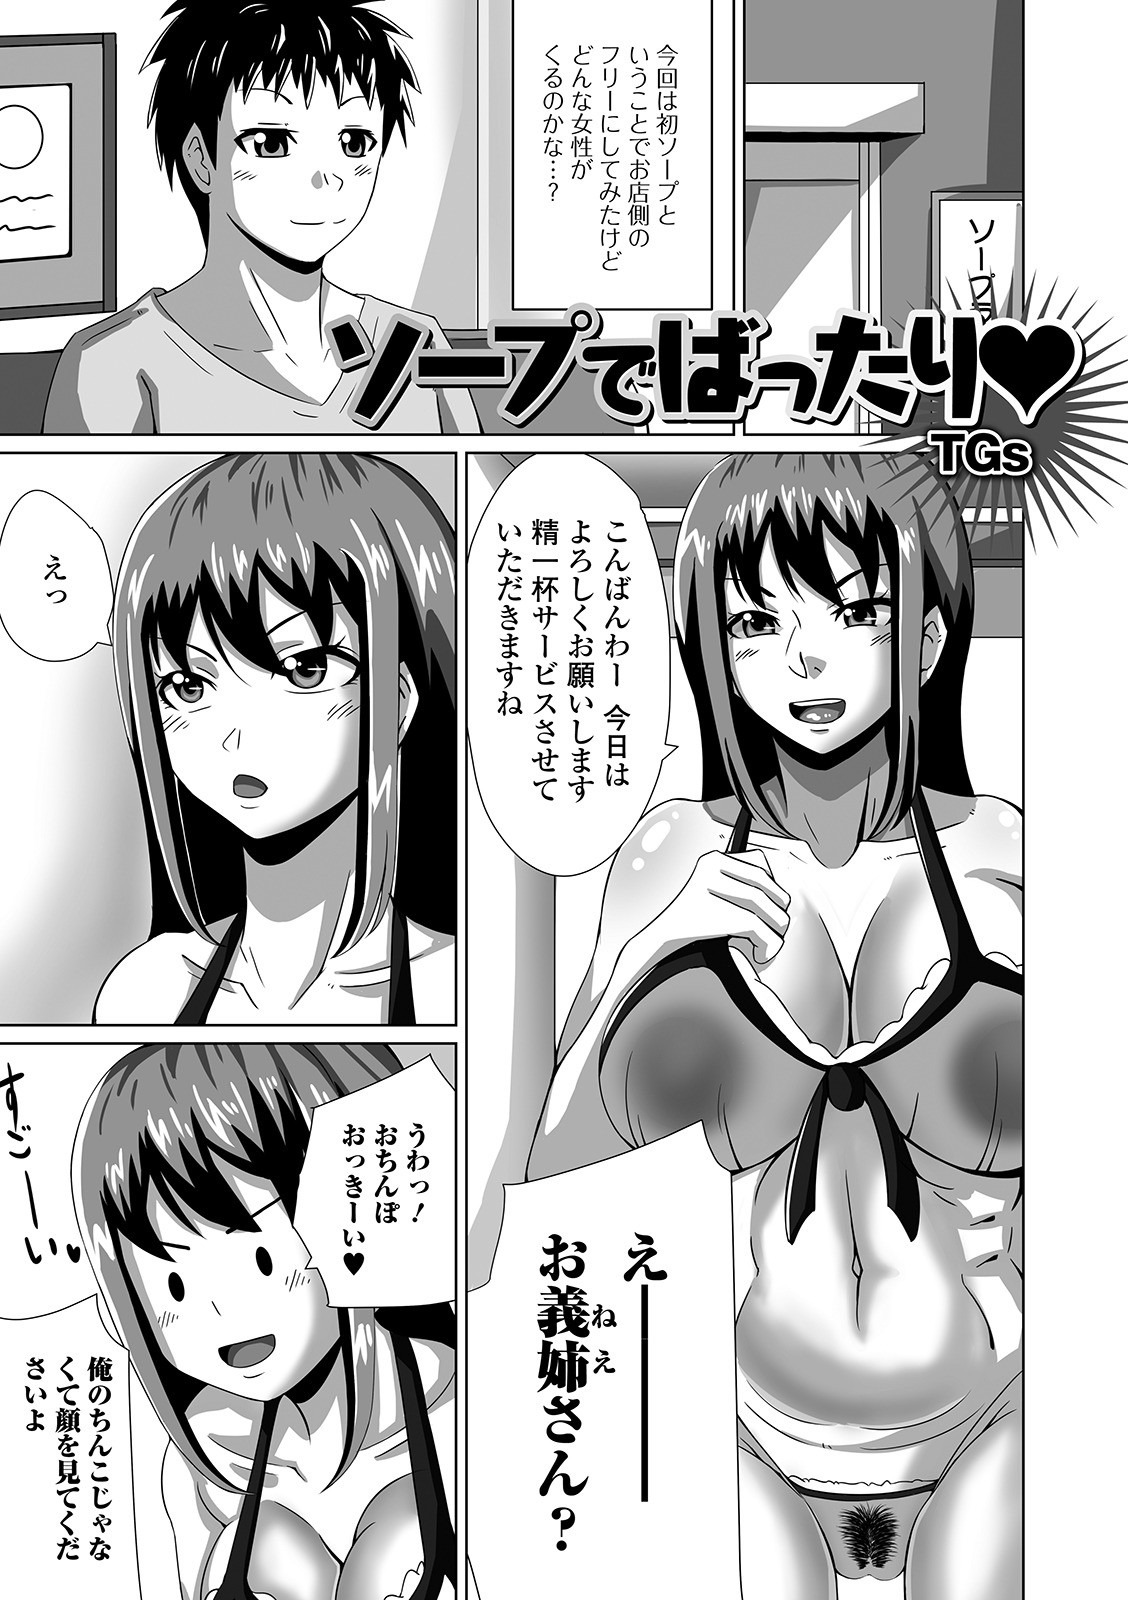 【エロ漫画】風俗で兄嫁とばったり。爆乳でエロ下着を着た淫乱な人妻が、ひょっとこフェラで下品におチンポをしゃぶり、陰毛マンコでドスケベな中出しセックスをしちゃうぞ